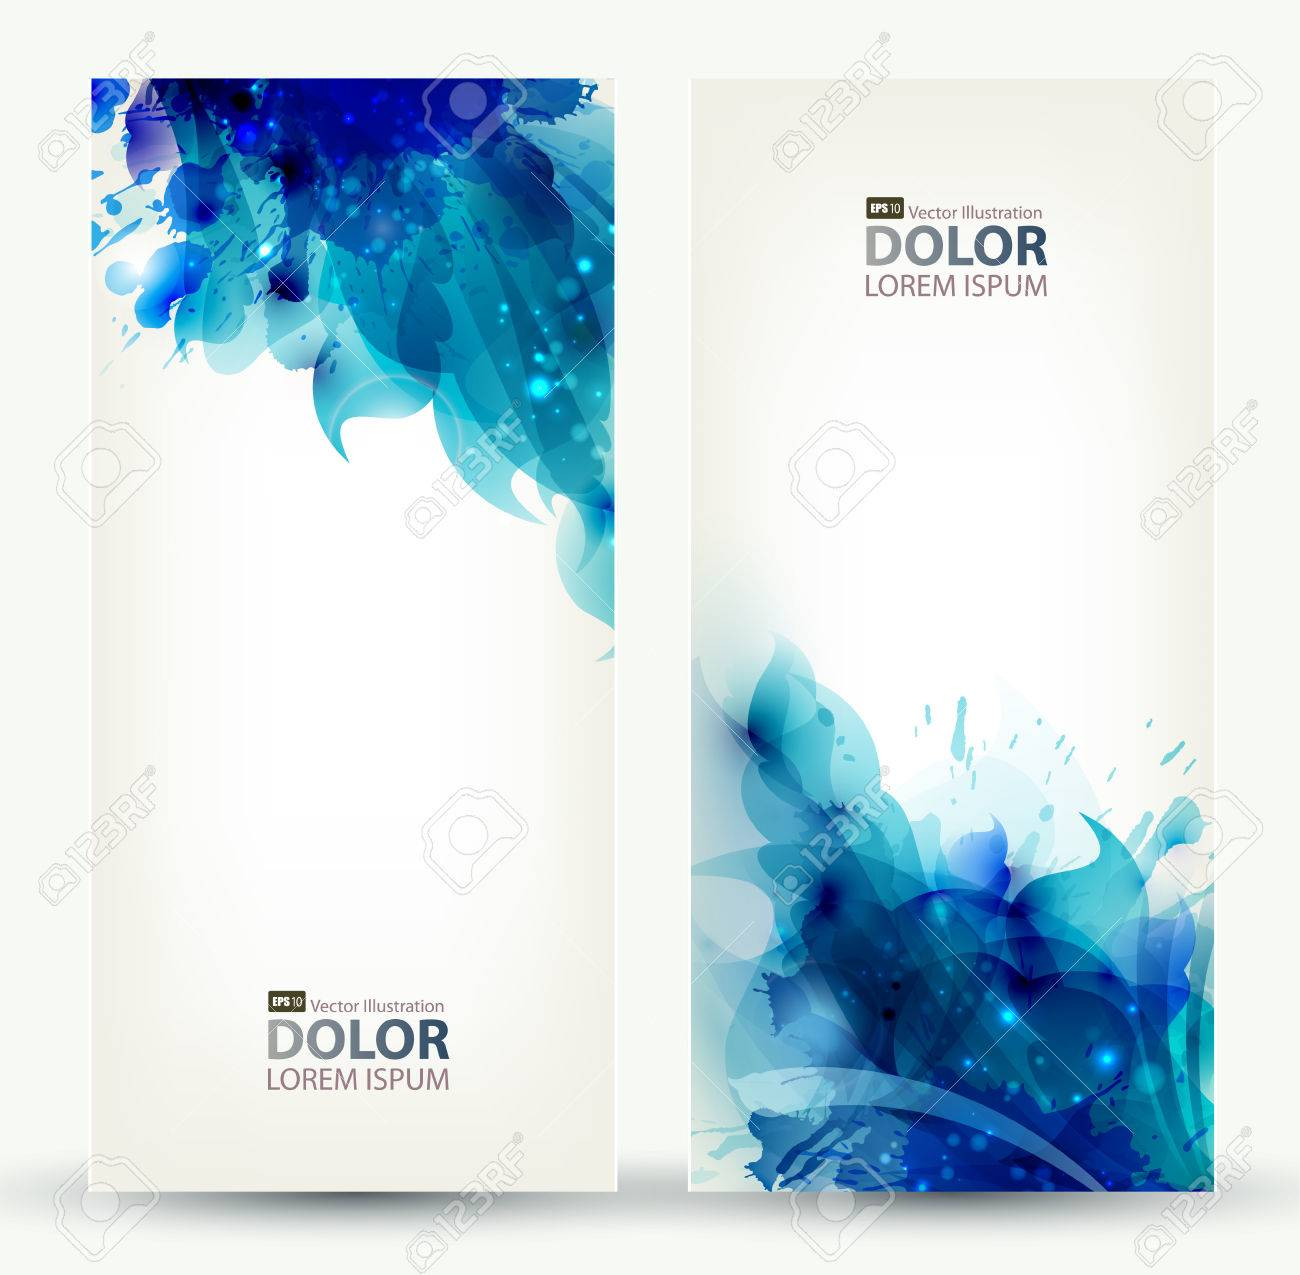 set of two banners, abstract headers with blue blots Stock Vector - 25497944